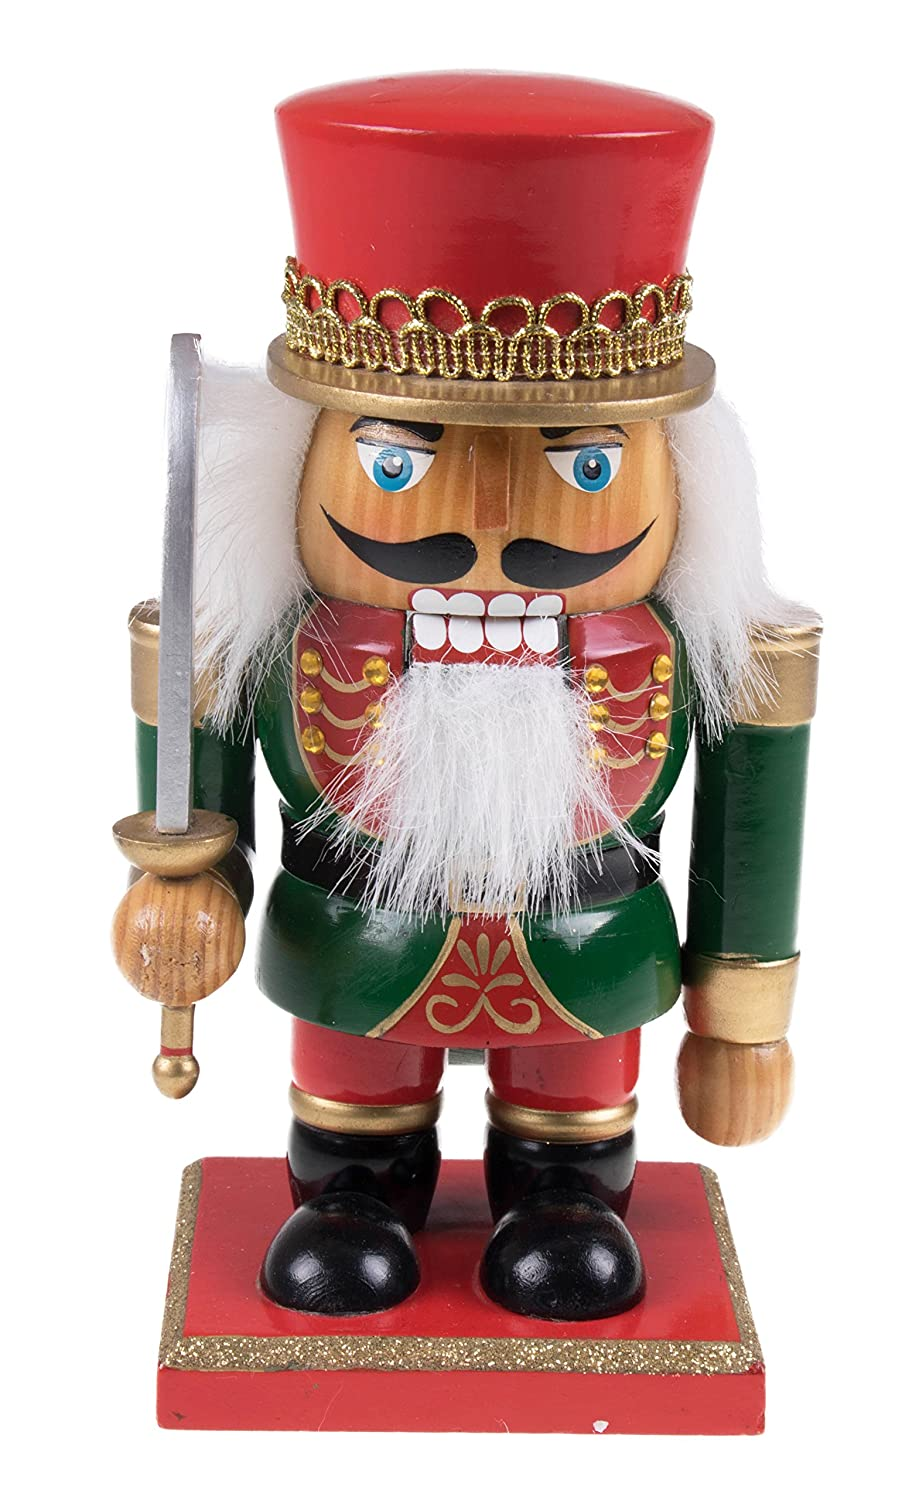 Hanse Design Manufacturing Chubby Soldier Nutcracker Decoration Figure With Crown, Boots, & Sword - 7.25